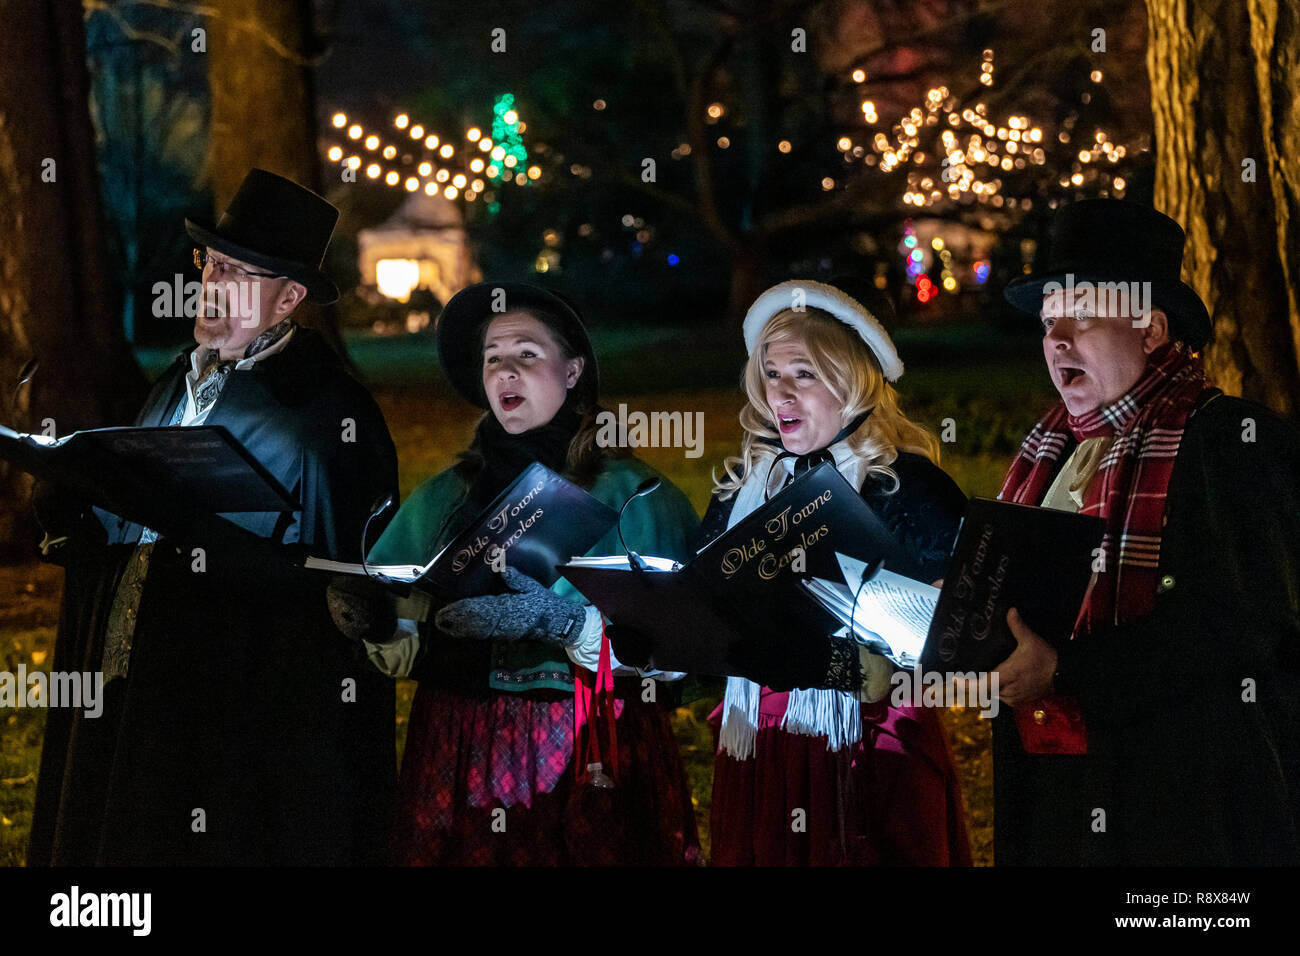 Christmas Carolers High Resolution Stock Photography And Images Alamy